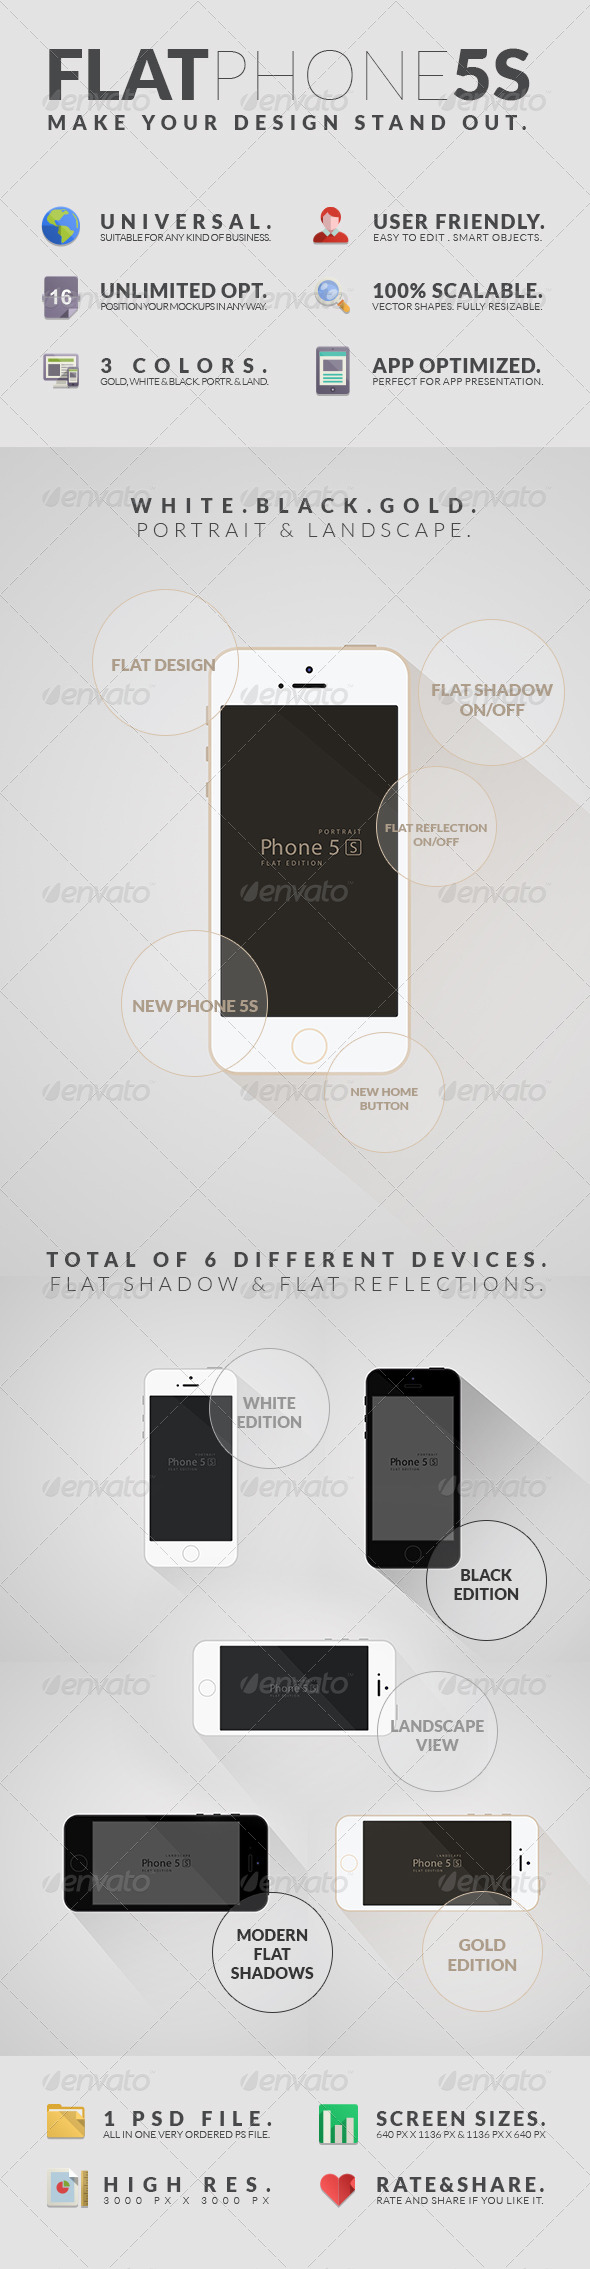 Flat Phone 5S Mockups - Mobile Displays